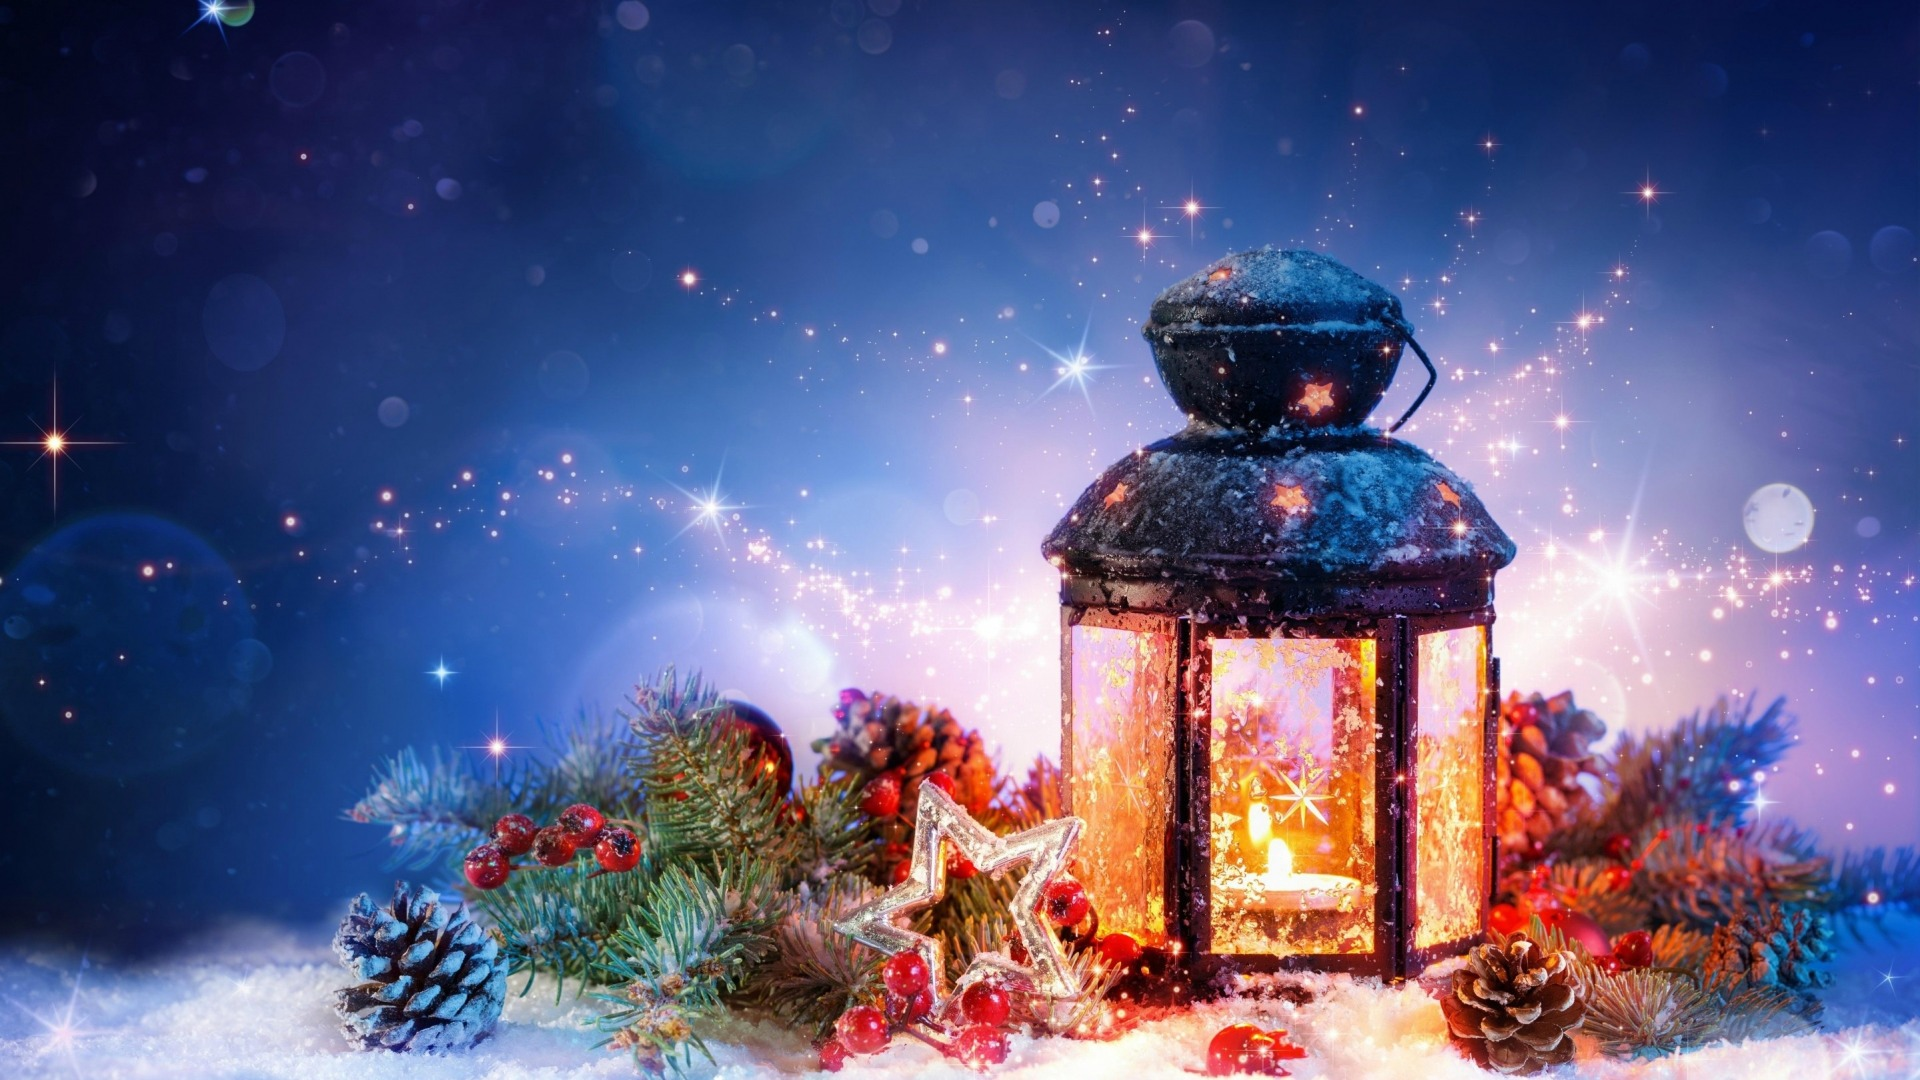 free-christmas-wallpaper-christmas-lantern-1920x1080p